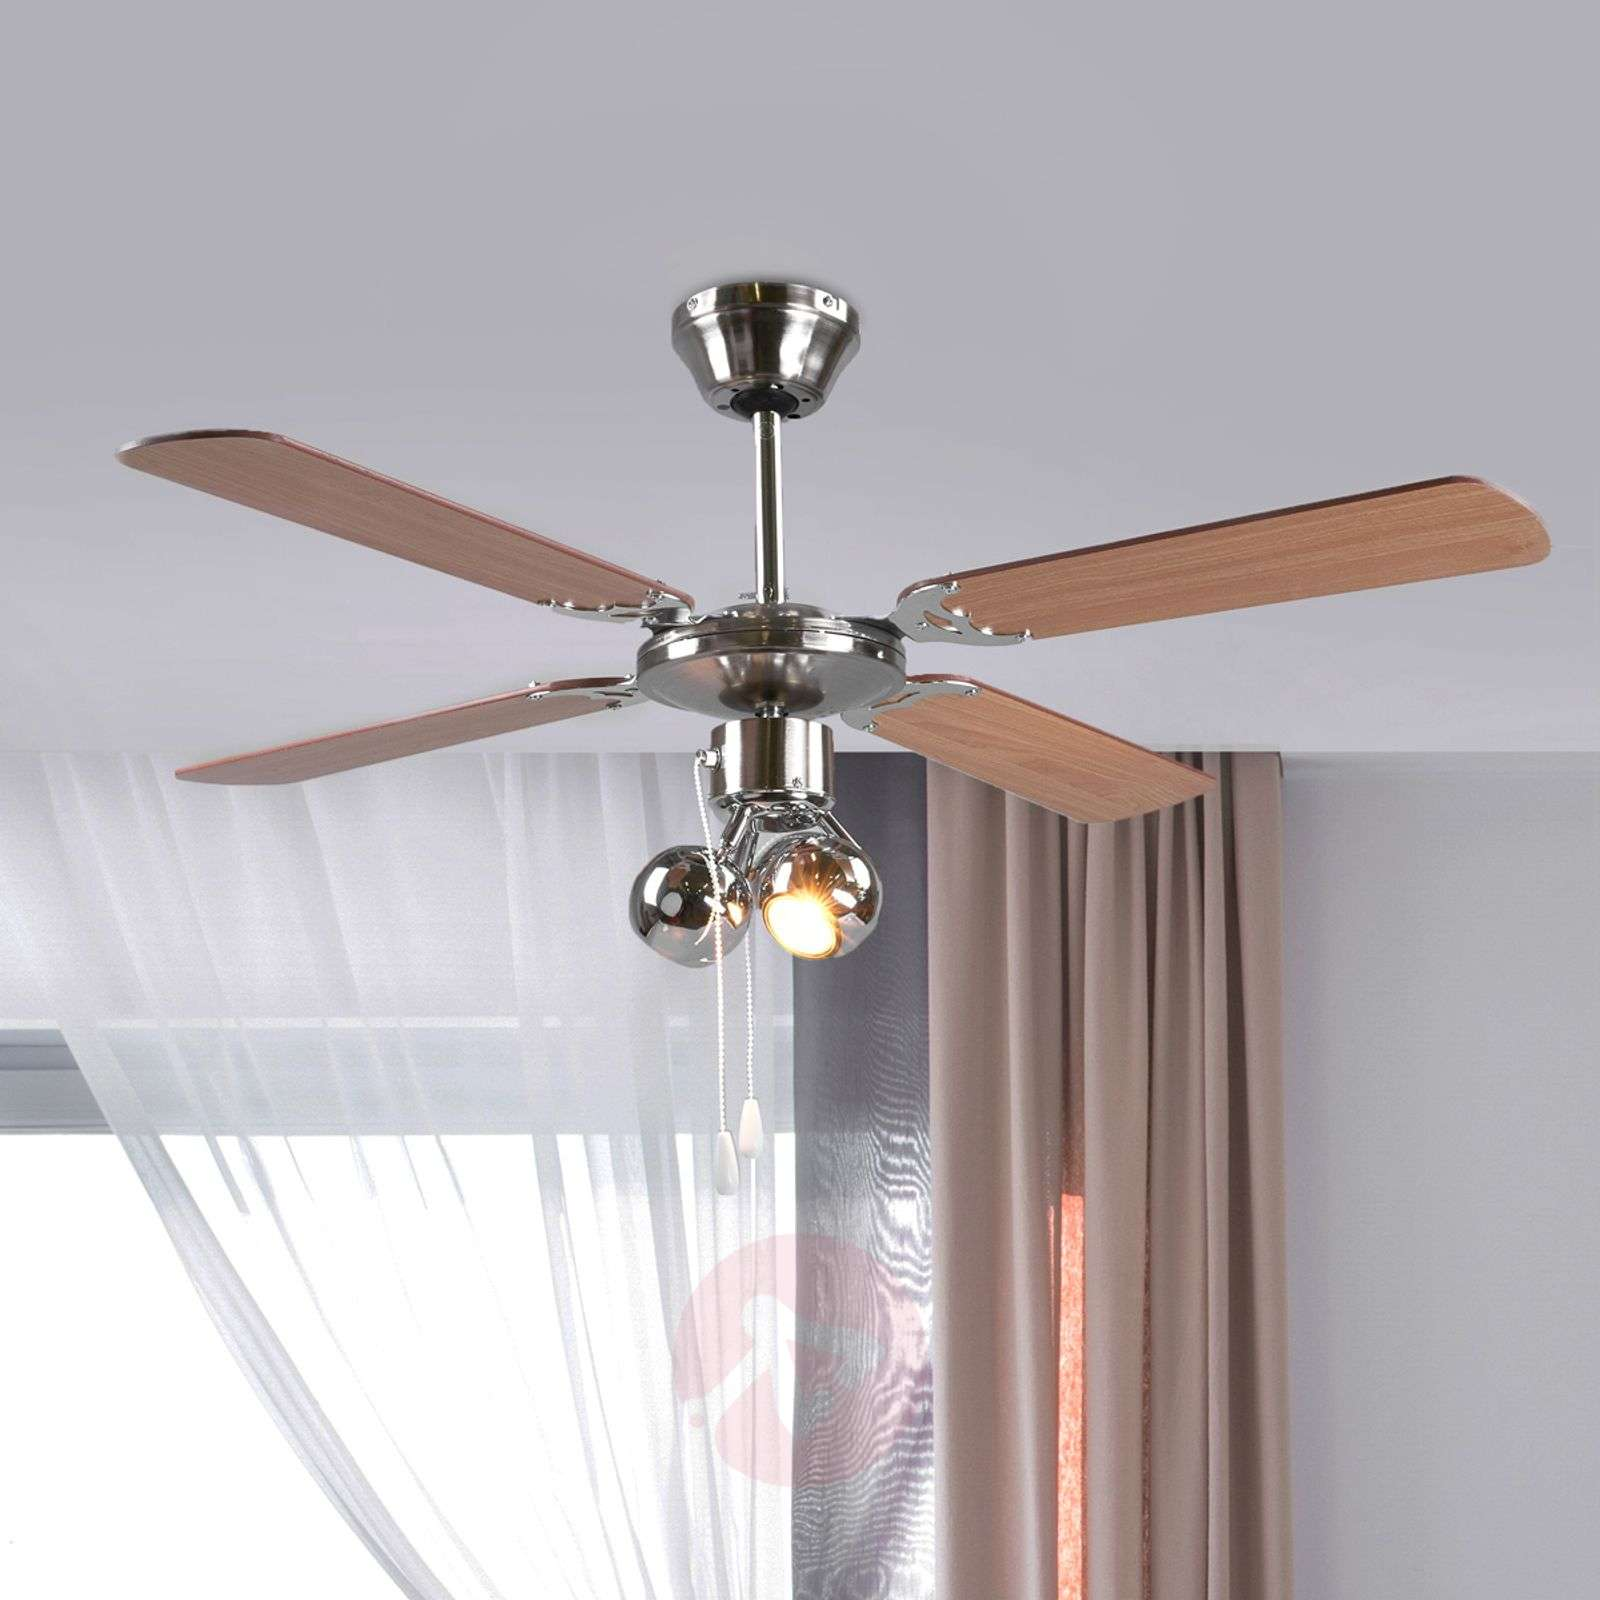 Beau Four Blade Ceiling Fan Gunda, With Light